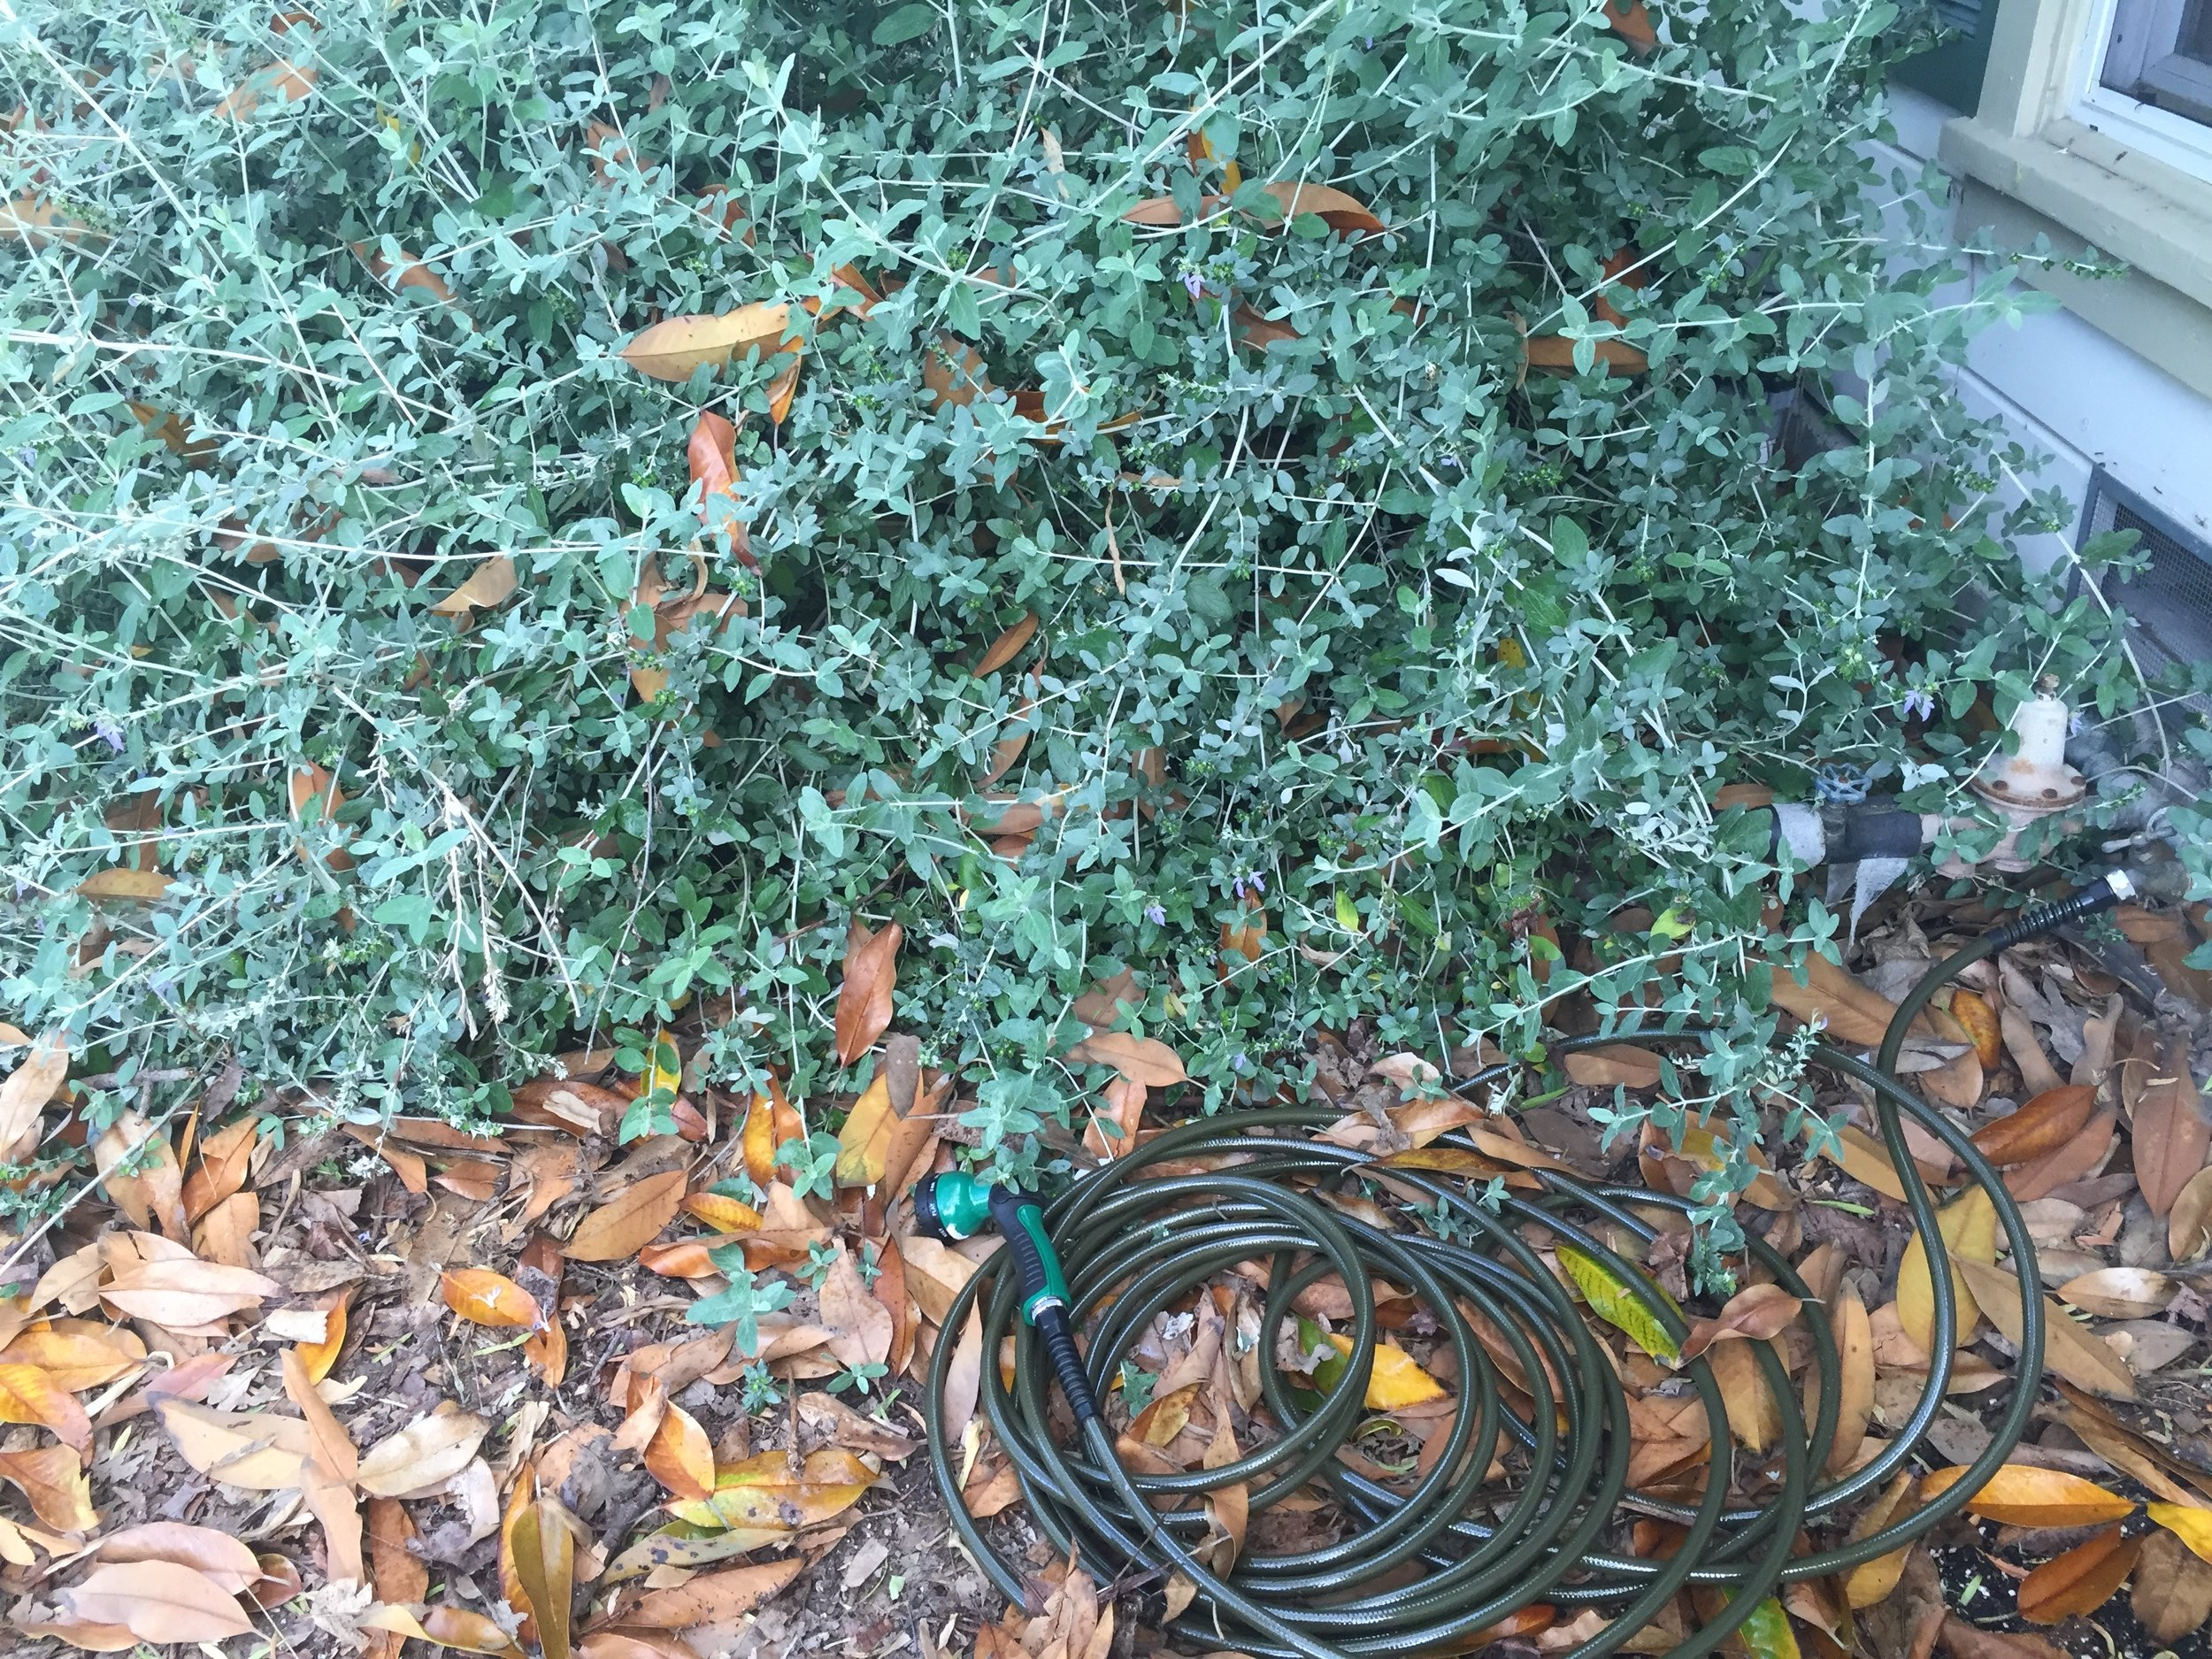 Even messily curled up, this hose is still really unobtrusive and unnoticable